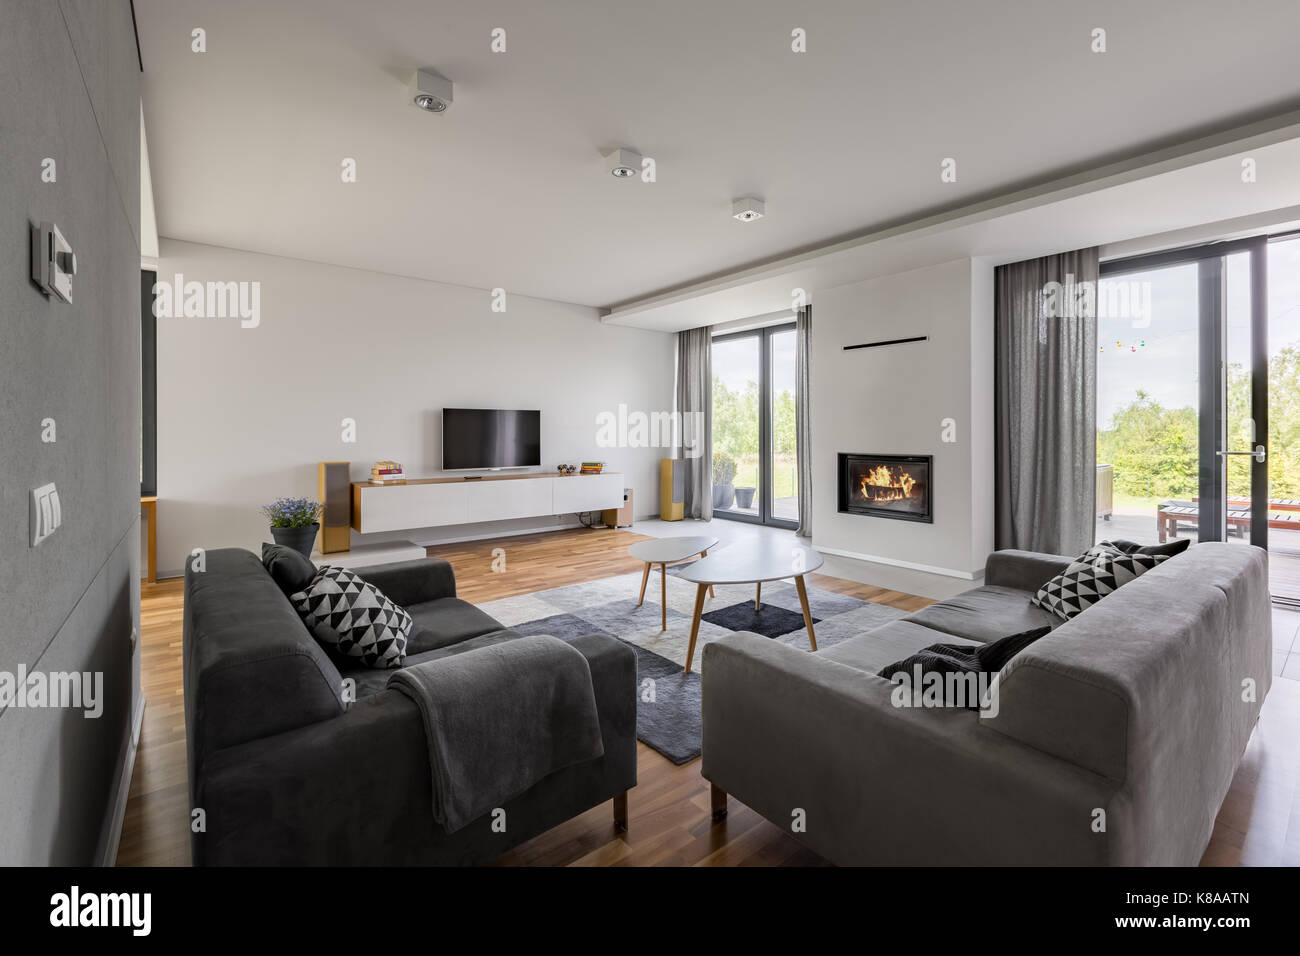 Luxurious living room with fireplace, tv, balcony and two couches - Stock Image